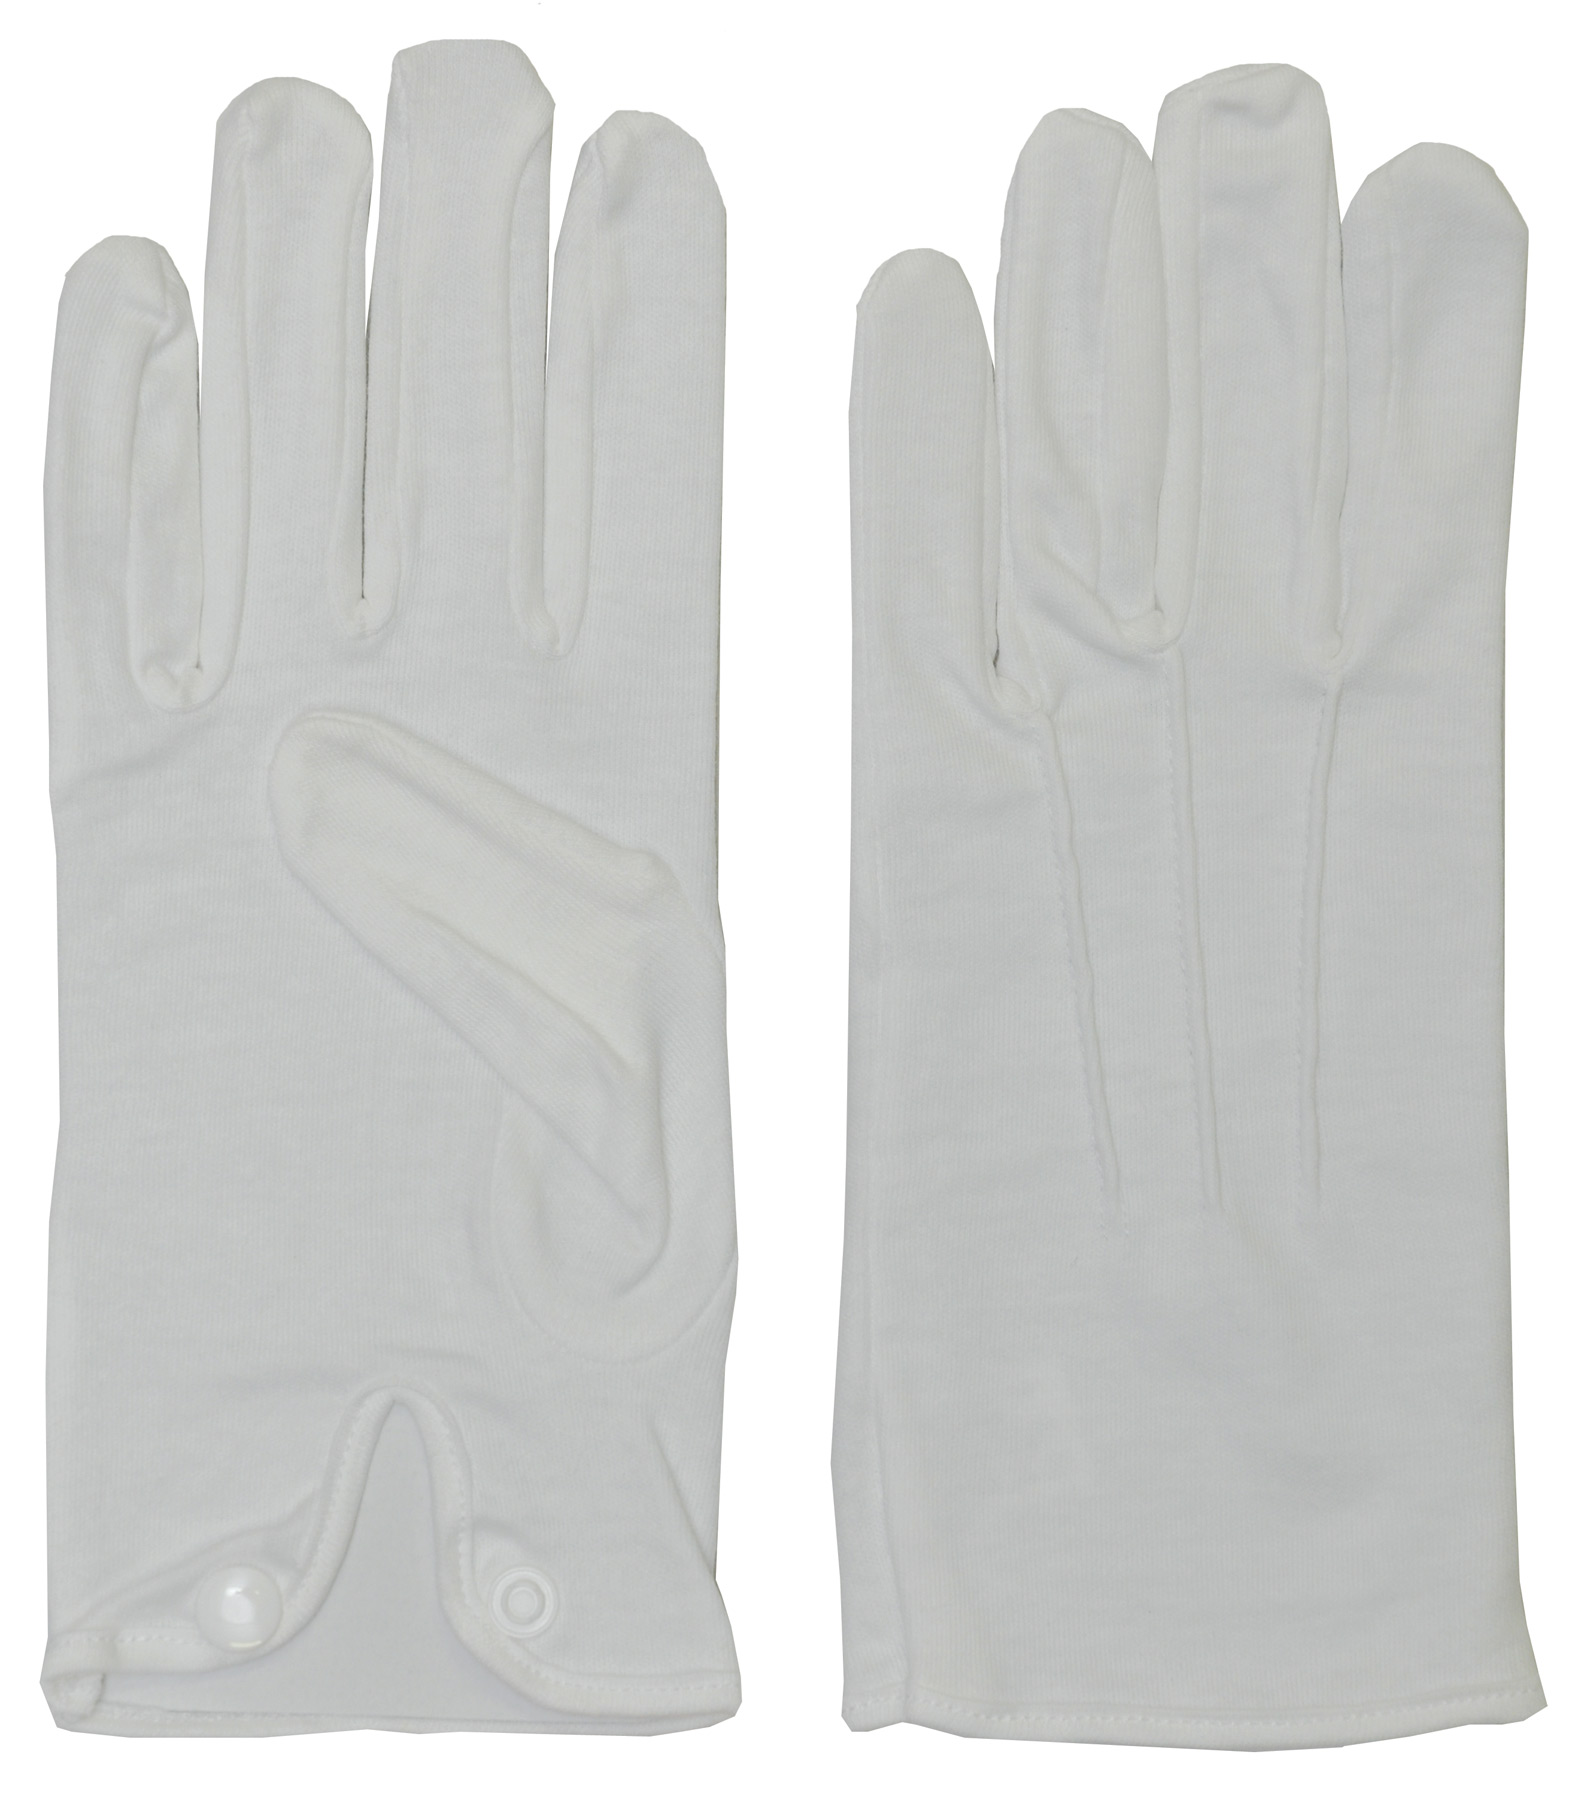 Men's White Cotton Gloves